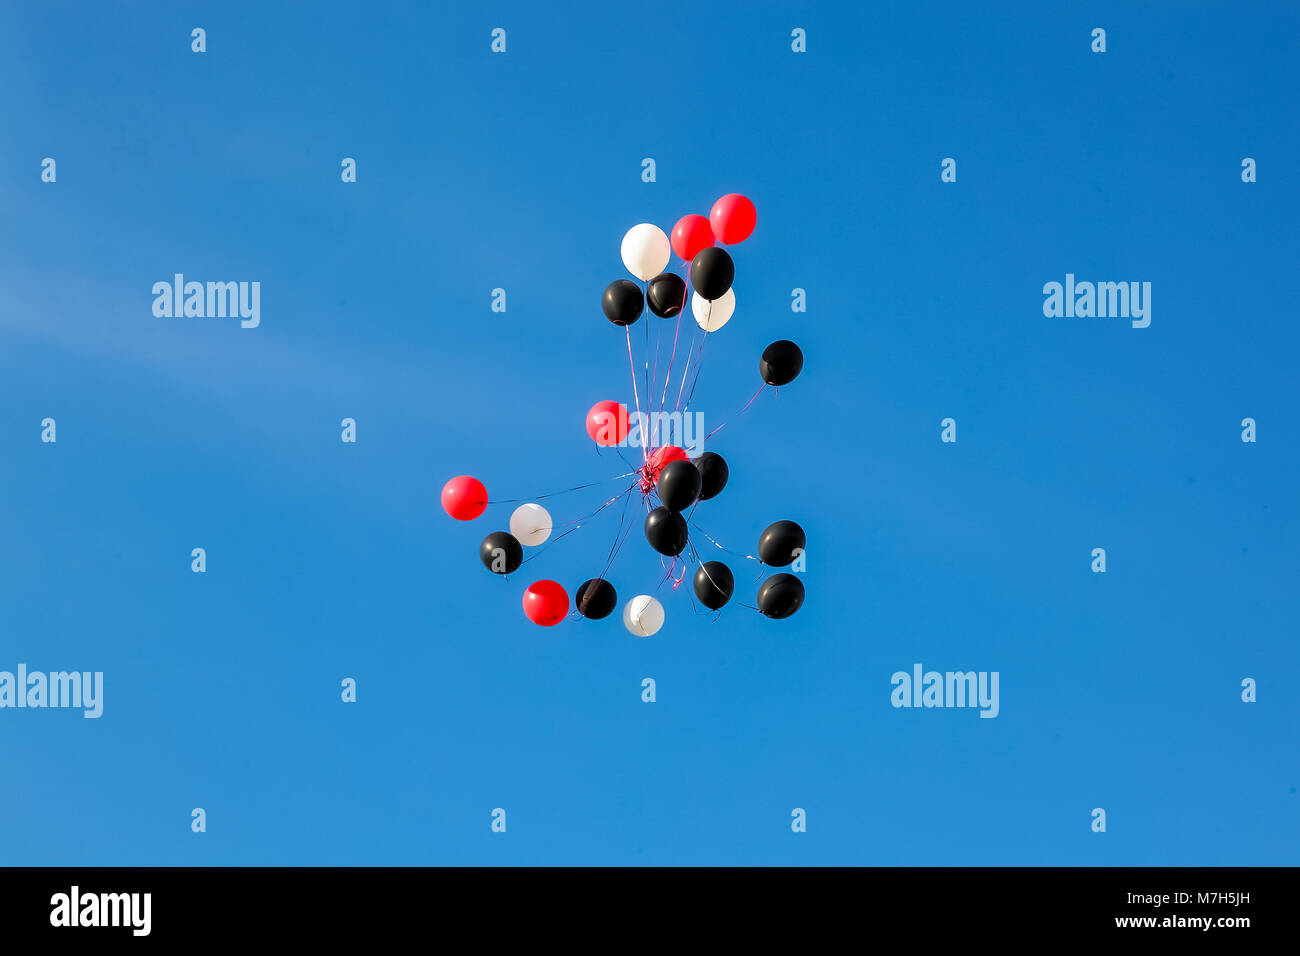 Red white black balloons floating away against a blue sky - Stock Image